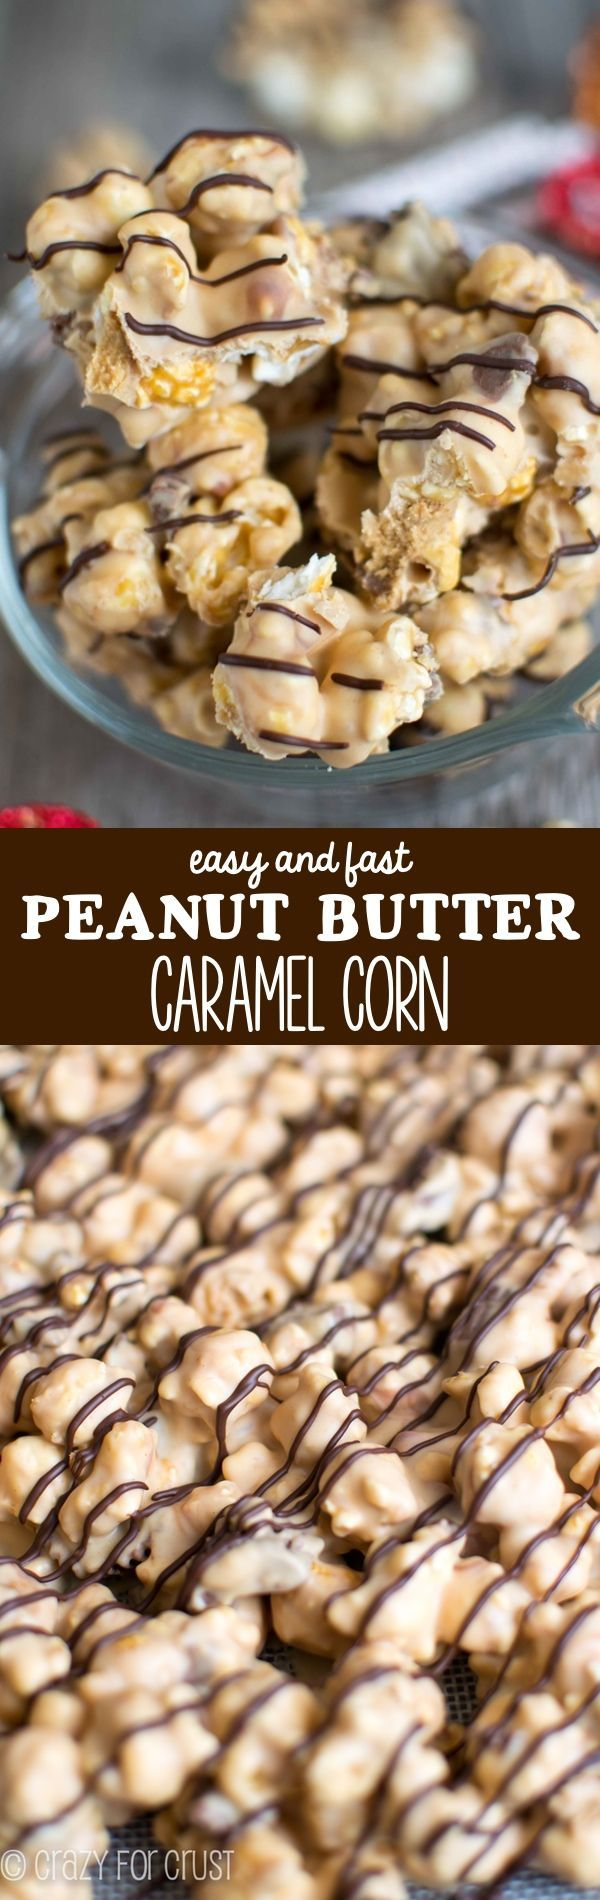 Easy Peanut Butter Caramel Corn - it's the only recipe I'll ever make again!